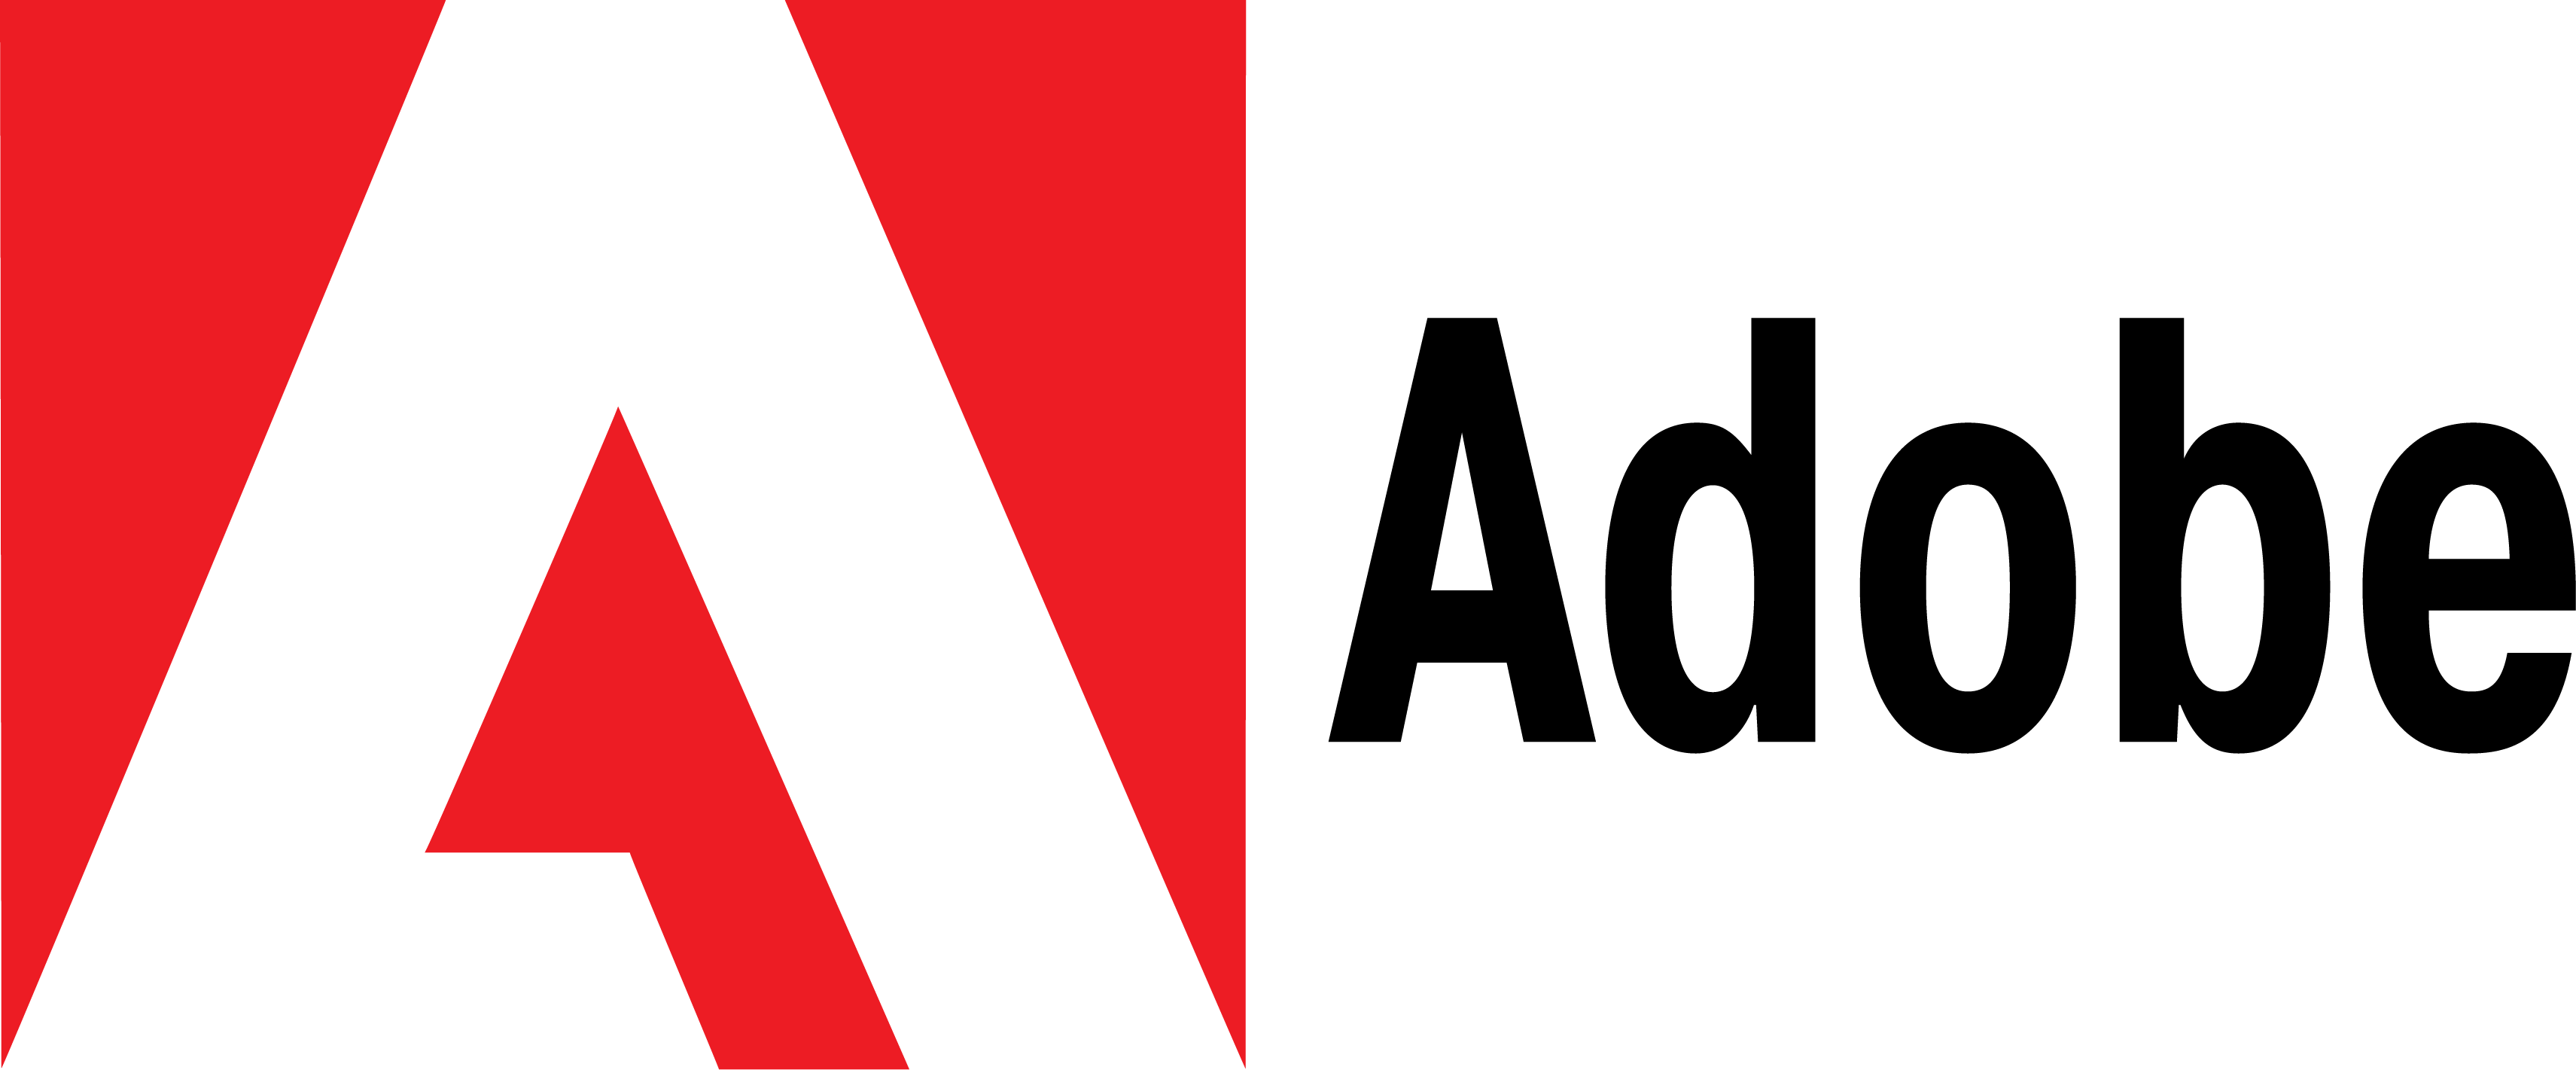 Adobe Document Cloud logo